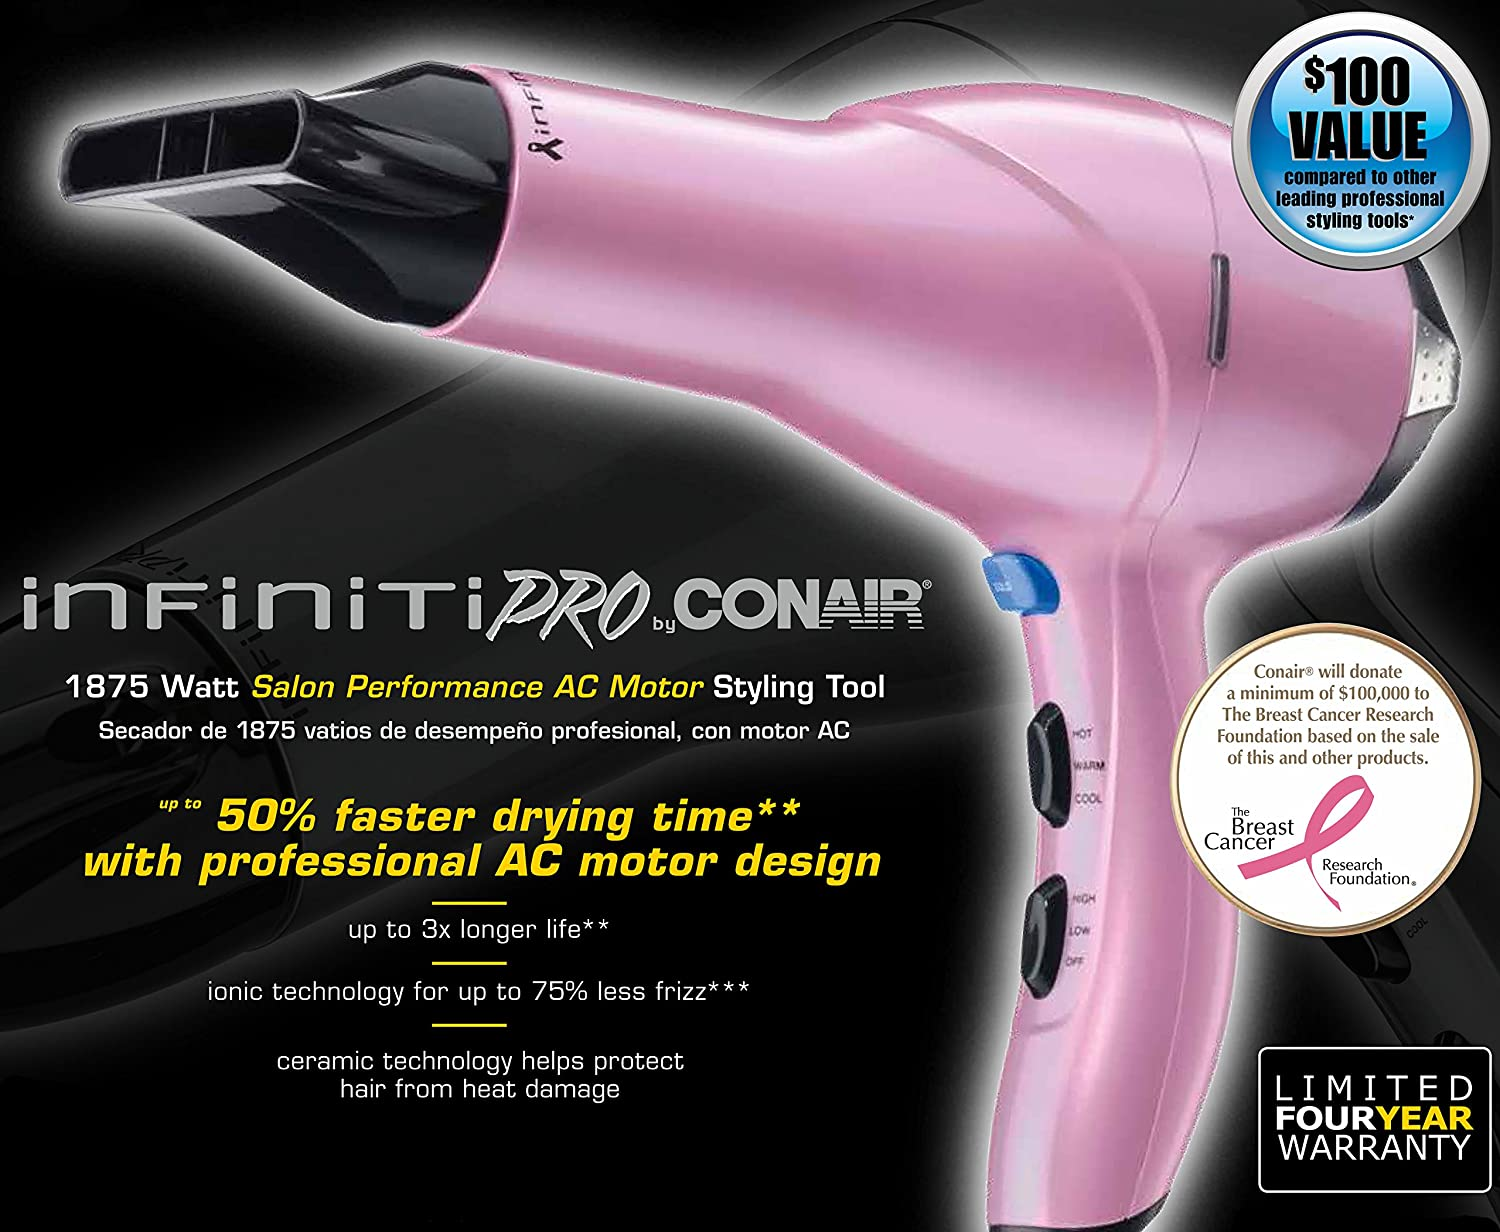 Amazon.com: Infiniti Pro by Conair Salon Performance AC Motor Styling Tool, Pink: Beauty